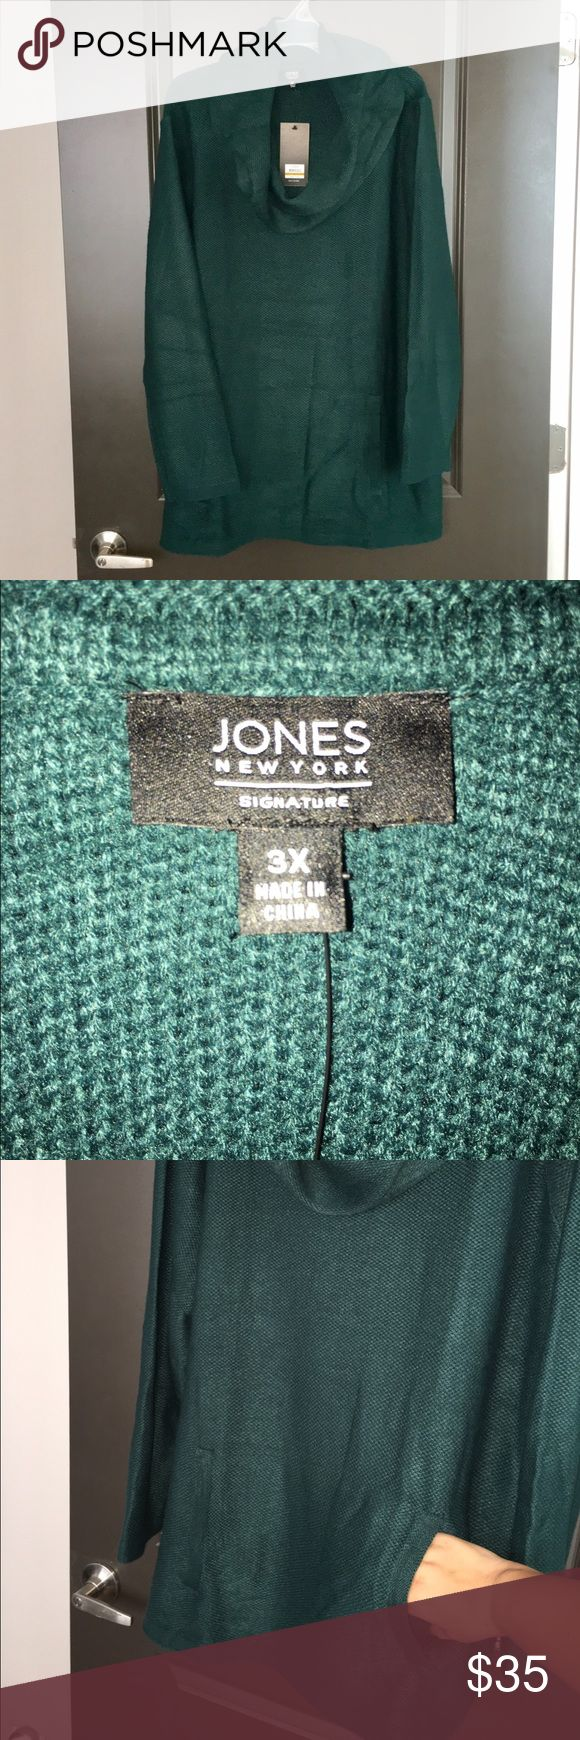 Plus size Sweater Jones New York Cowl-Neck Sweater With kangaroo pocket. Plus size. Jones New York Sweaters Cowl & Turtlenecks